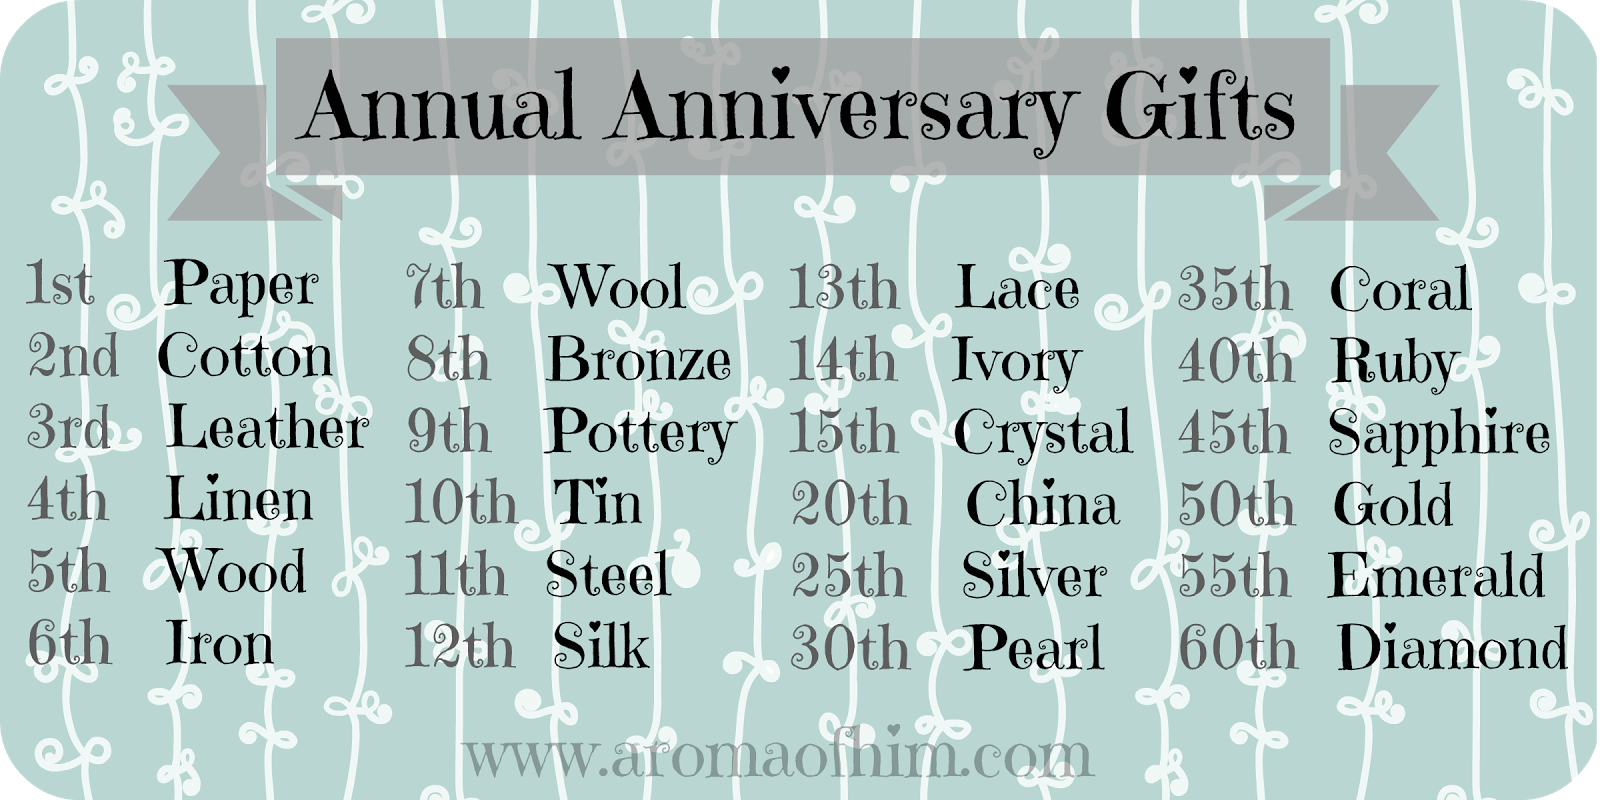 List Wedding Gifts Per Year : Curious To Know If Anyone Uses This List Each Year I Guess I . 2 Month ...